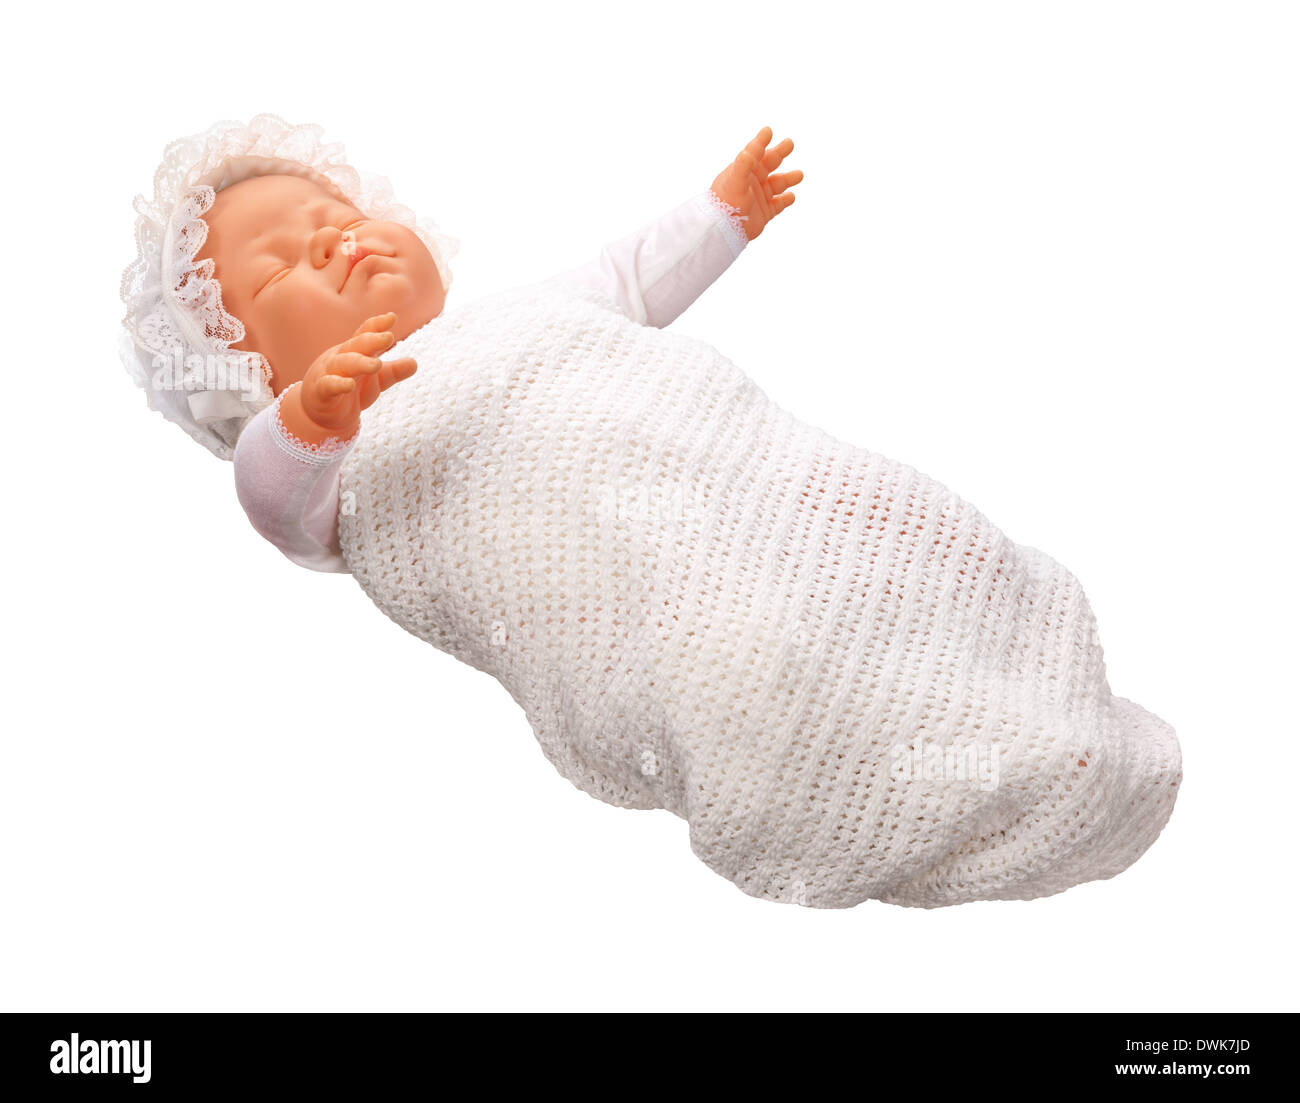 Antique Baby Doll isolated on a white background. - Stock Image